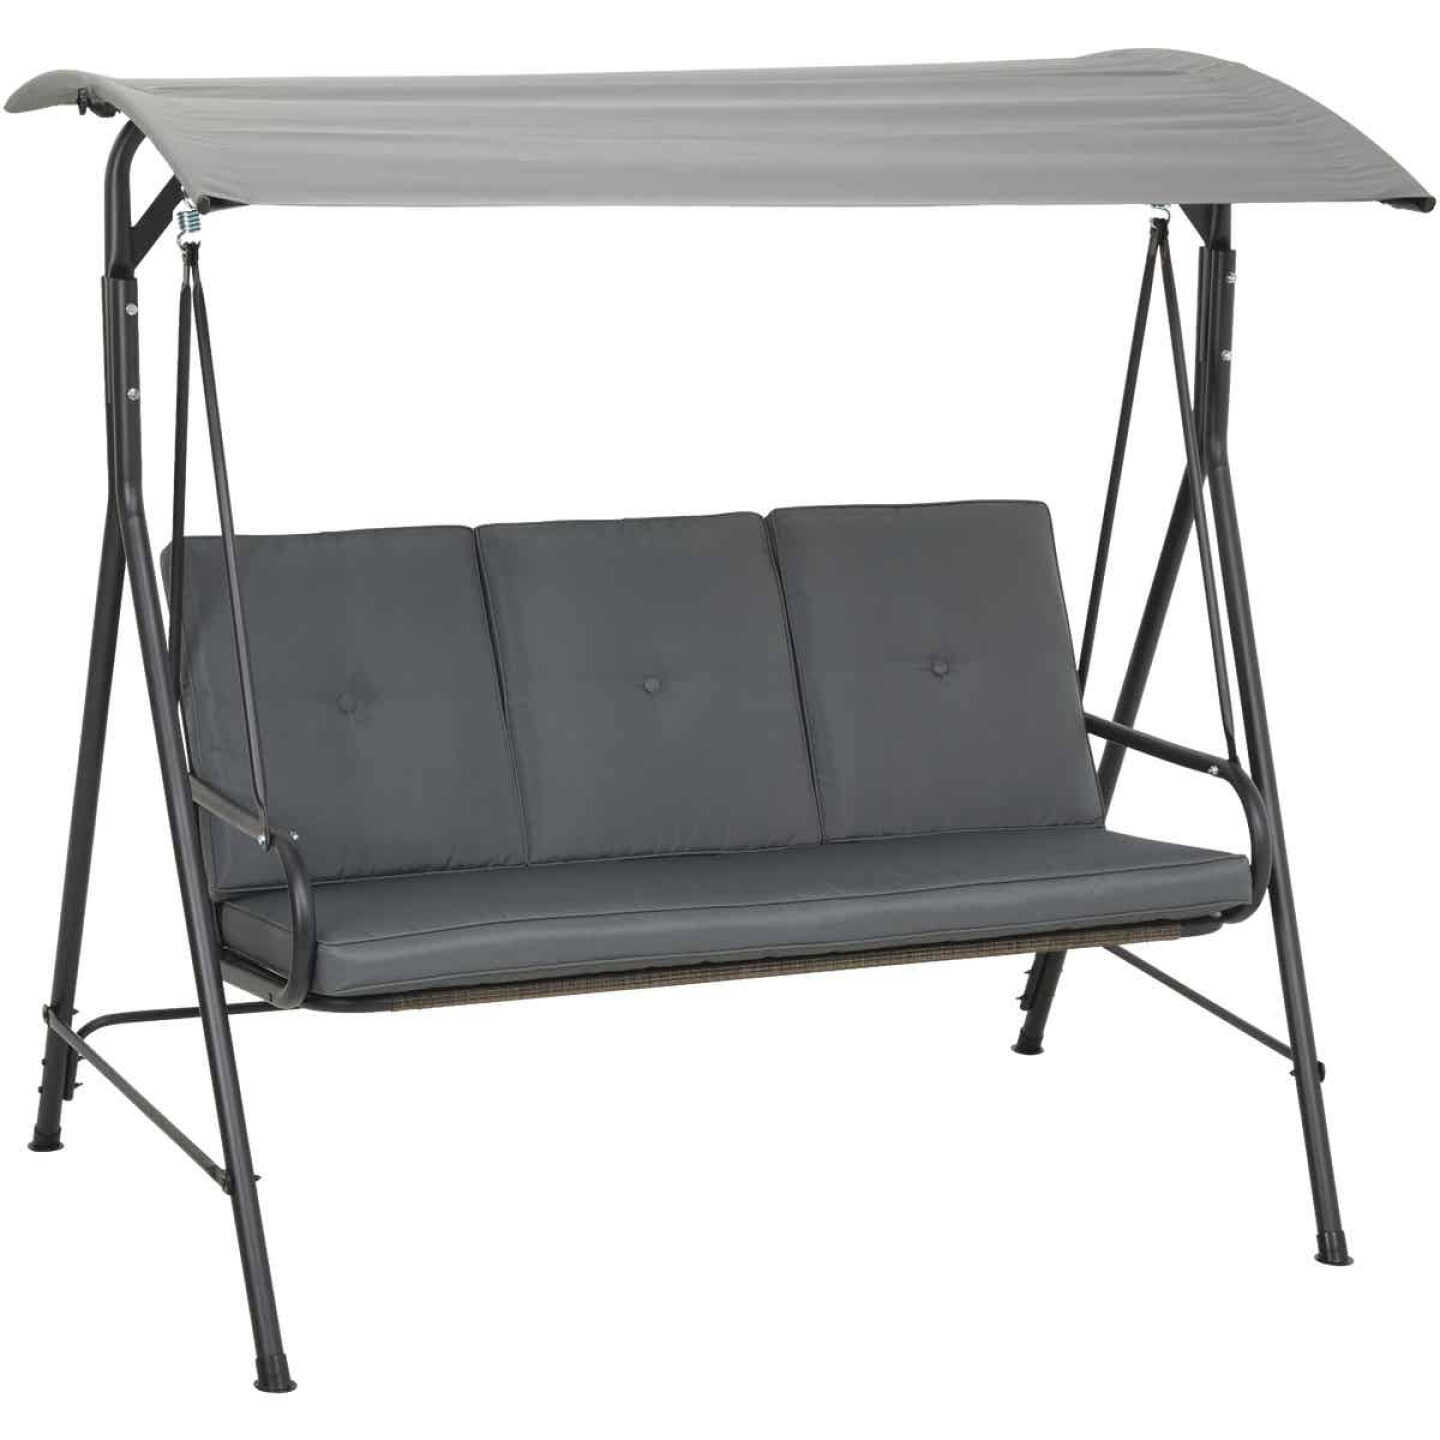 Outdoor Expressions 3-Person 71.65 In. W. x 66.93 In. H. x 49.21 In. D. Gray Patio Swing Image 7